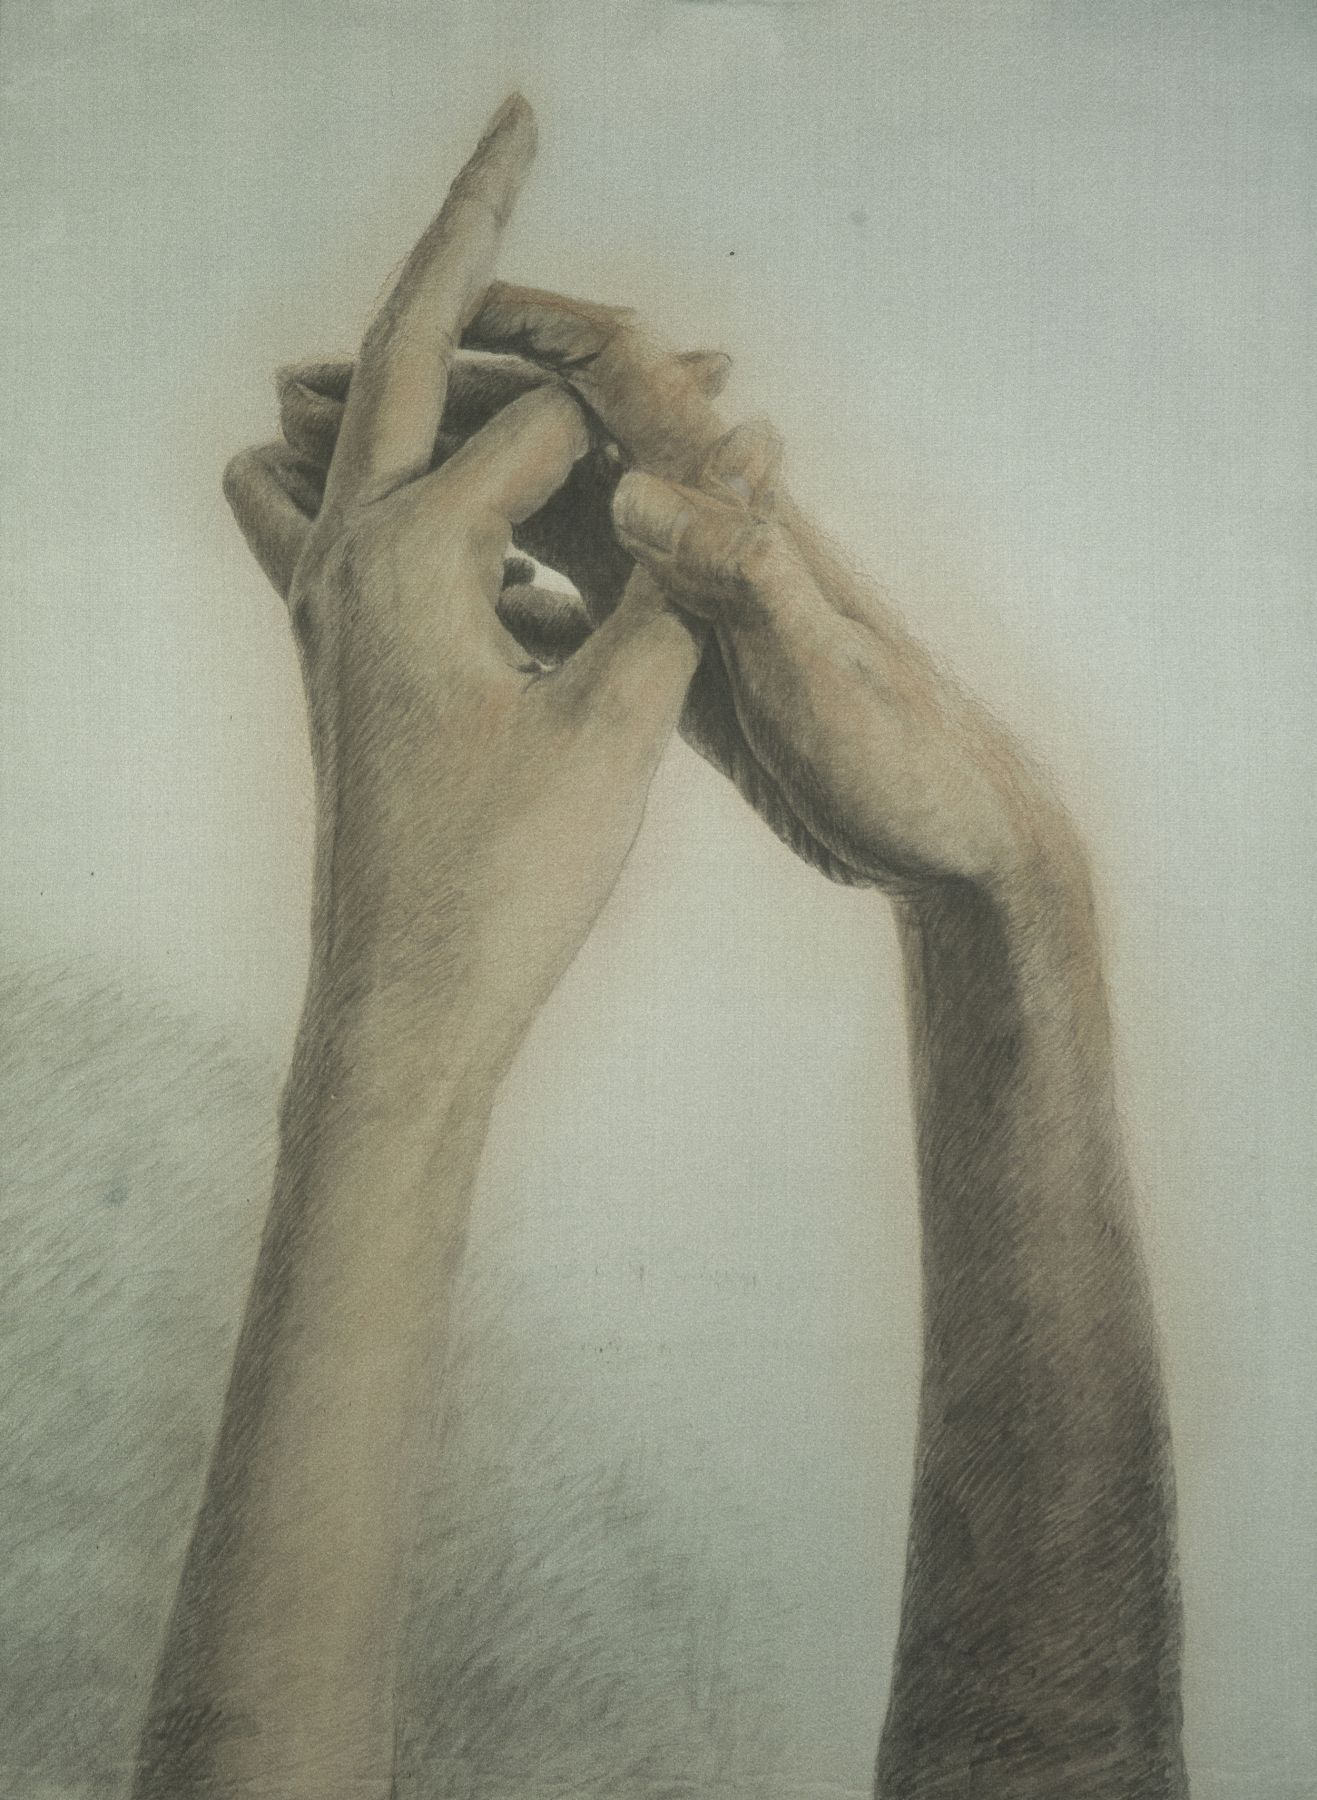 Botticelli- Hands 波提切利的手, 2012